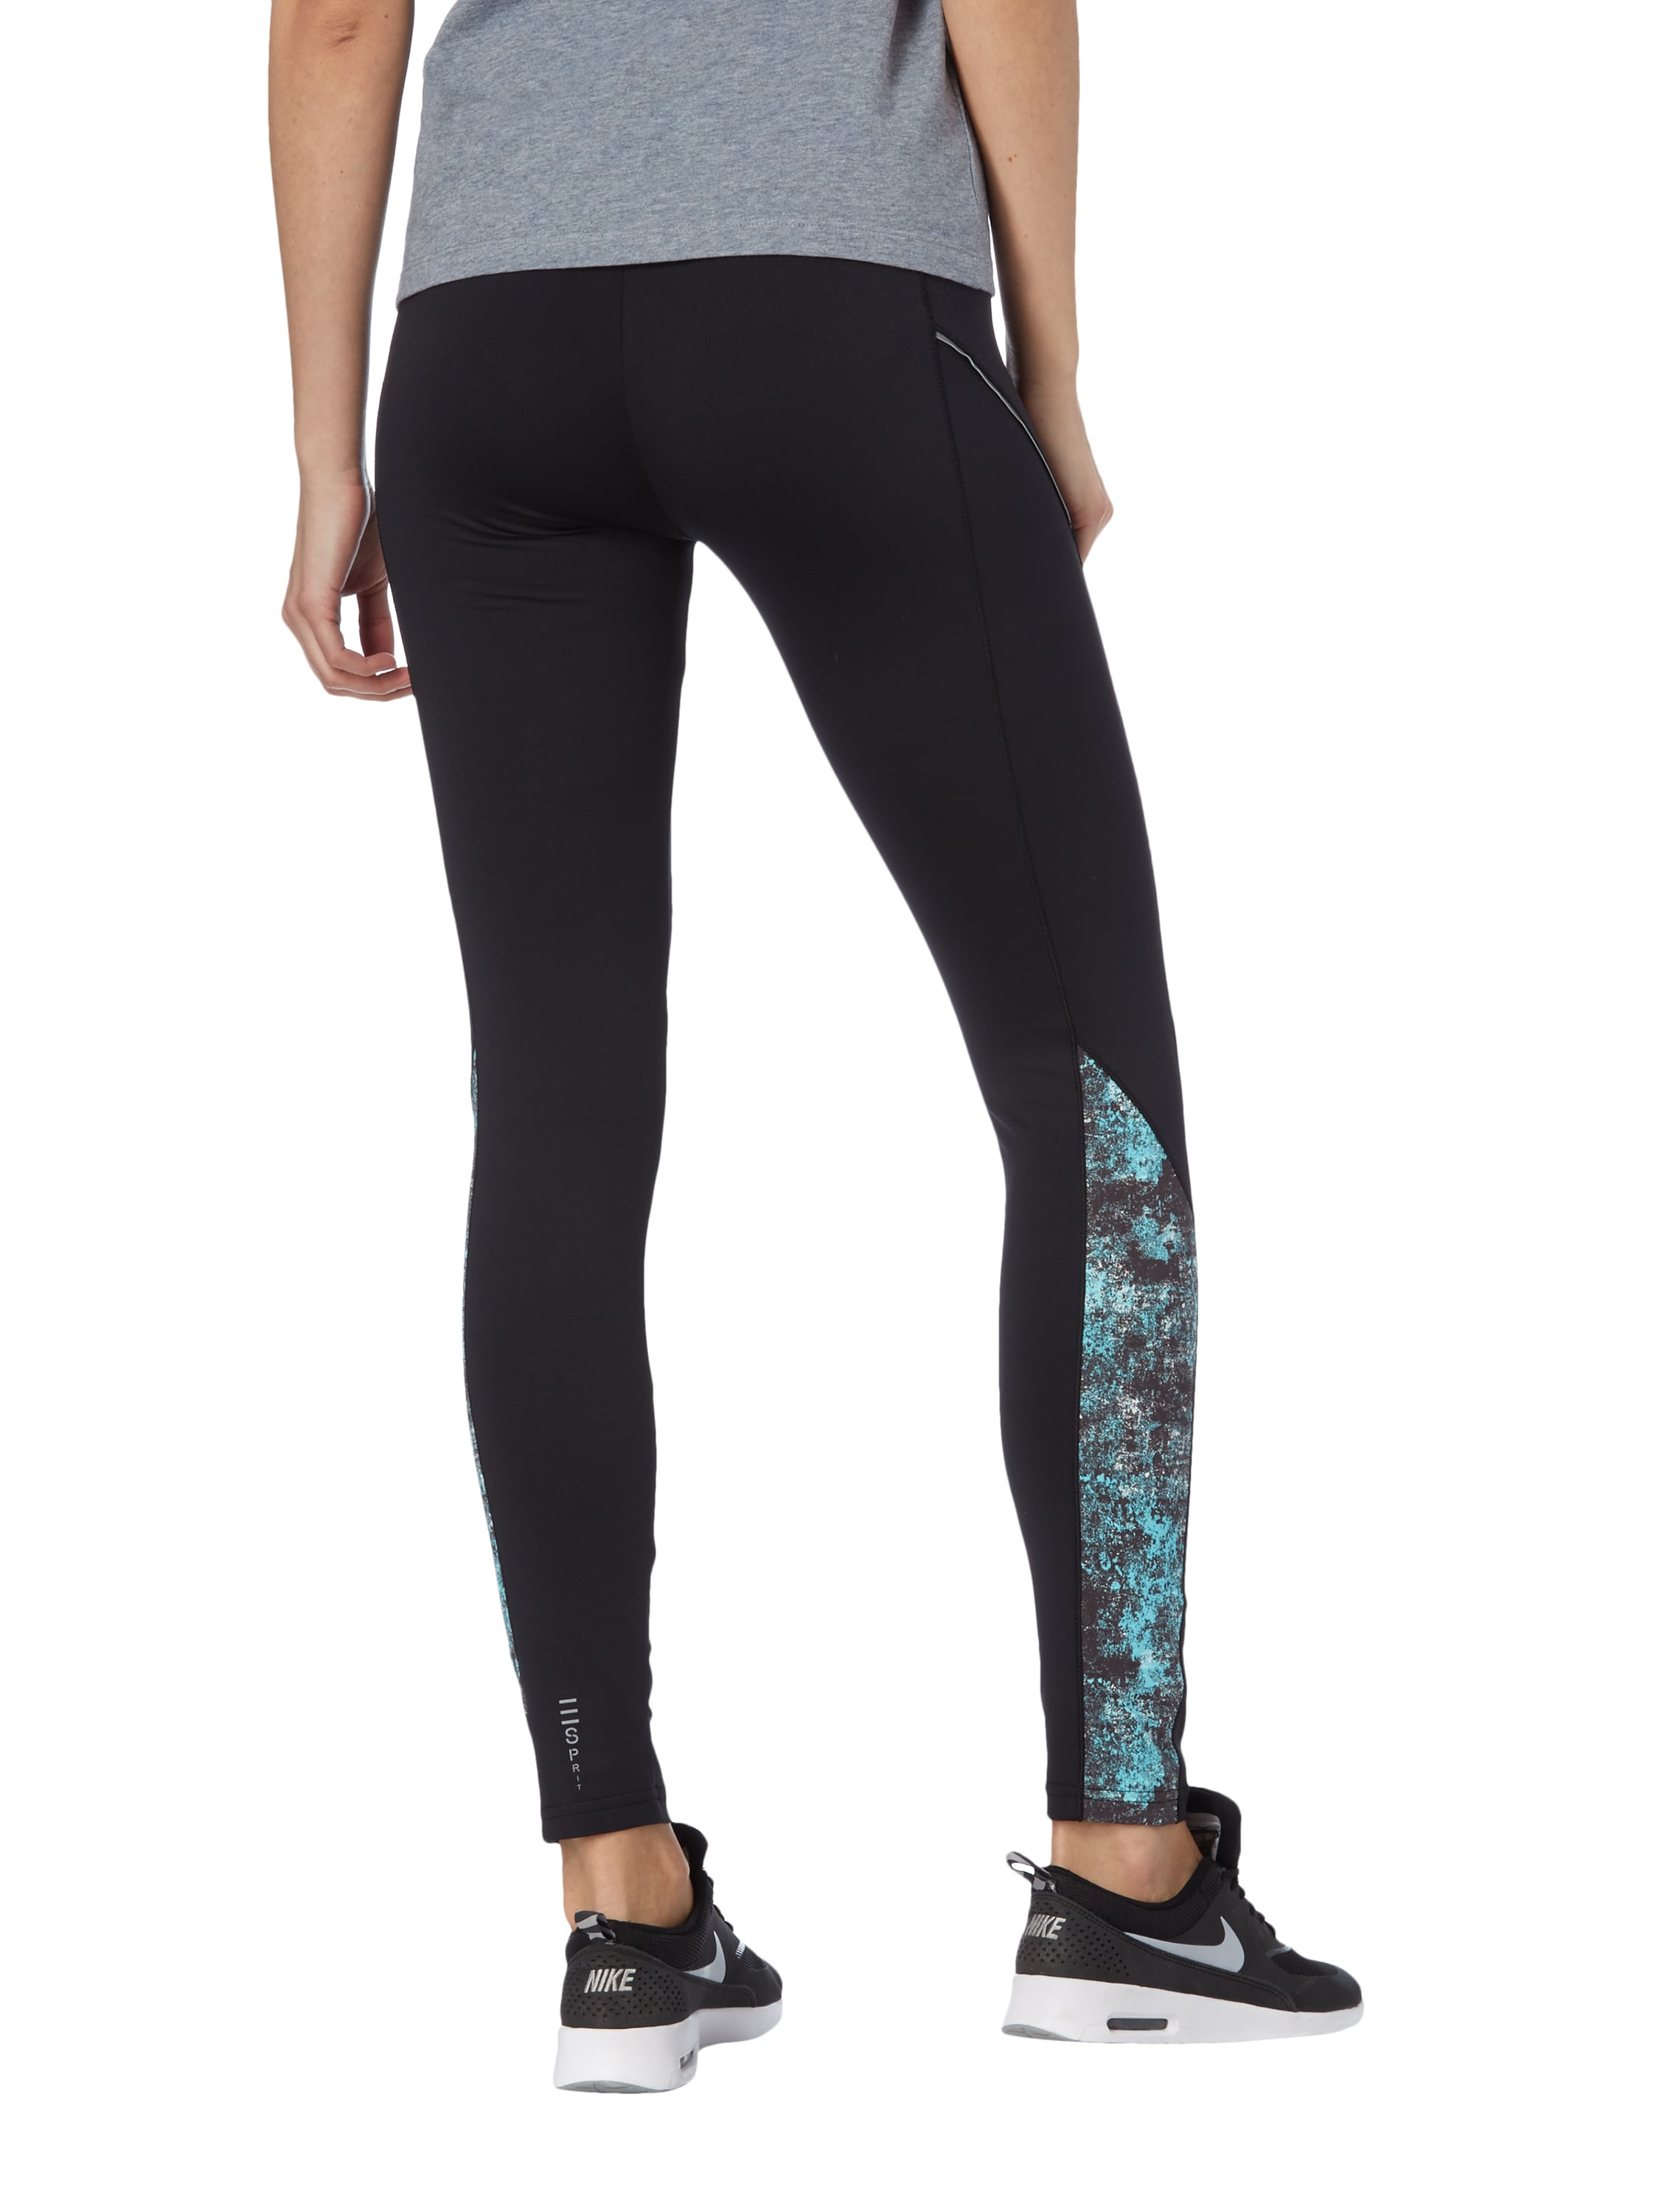 esprit sport leggings mit reflektorstreifen in grau schwarz online kaufen 9591558 p c. Black Bedroom Furniture Sets. Home Design Ideas